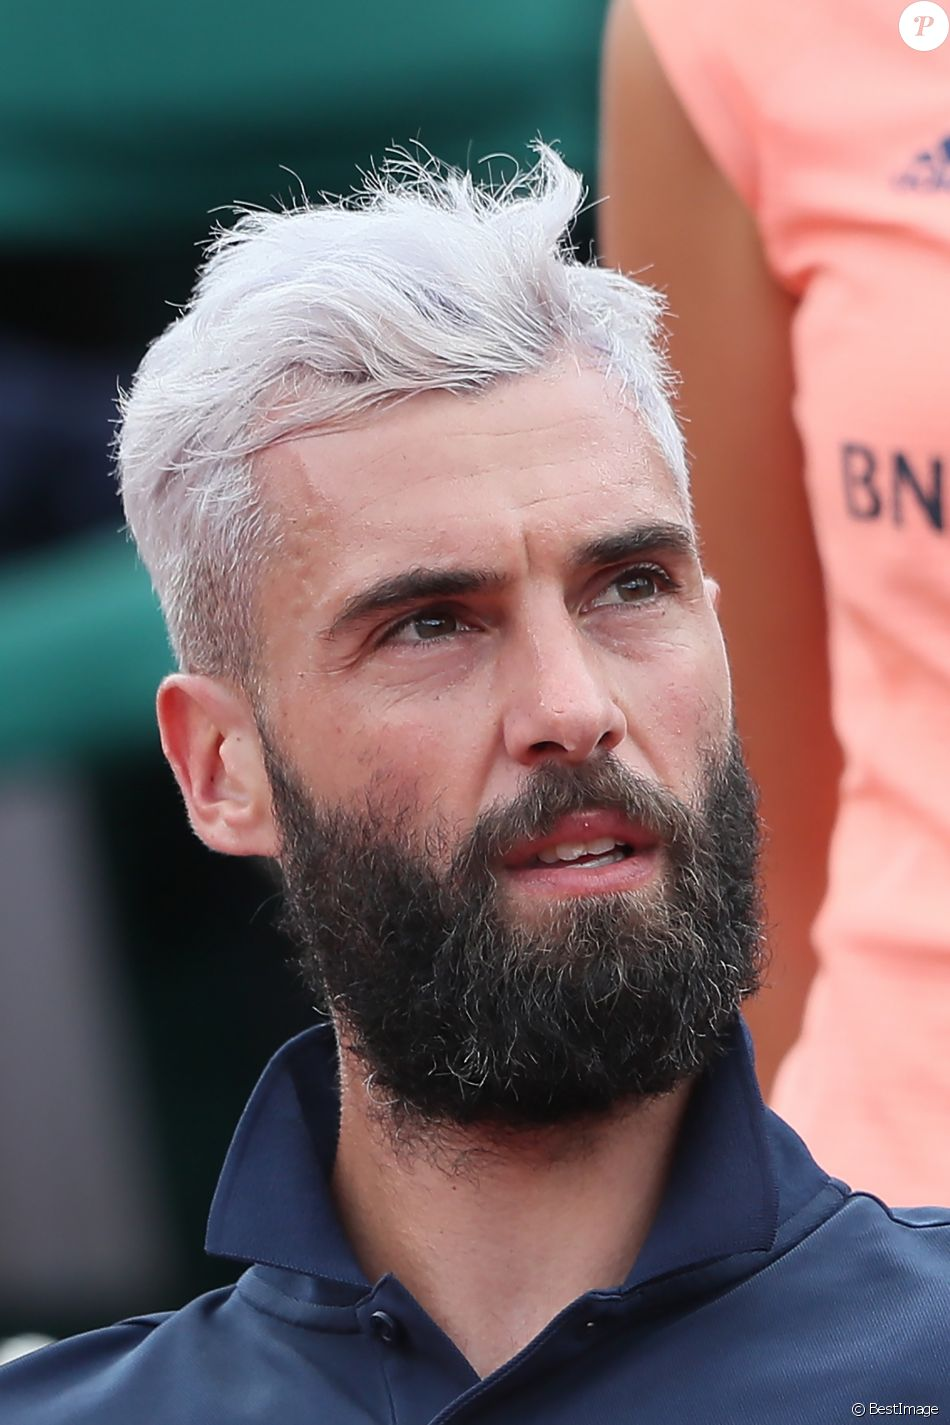 Benoît Paire lors des internationaux de Roland Garros - jour 4 - à Paris, France, le 30 mai 2018. © Cyril Moreau - Dominique Jacovides/Bestimage